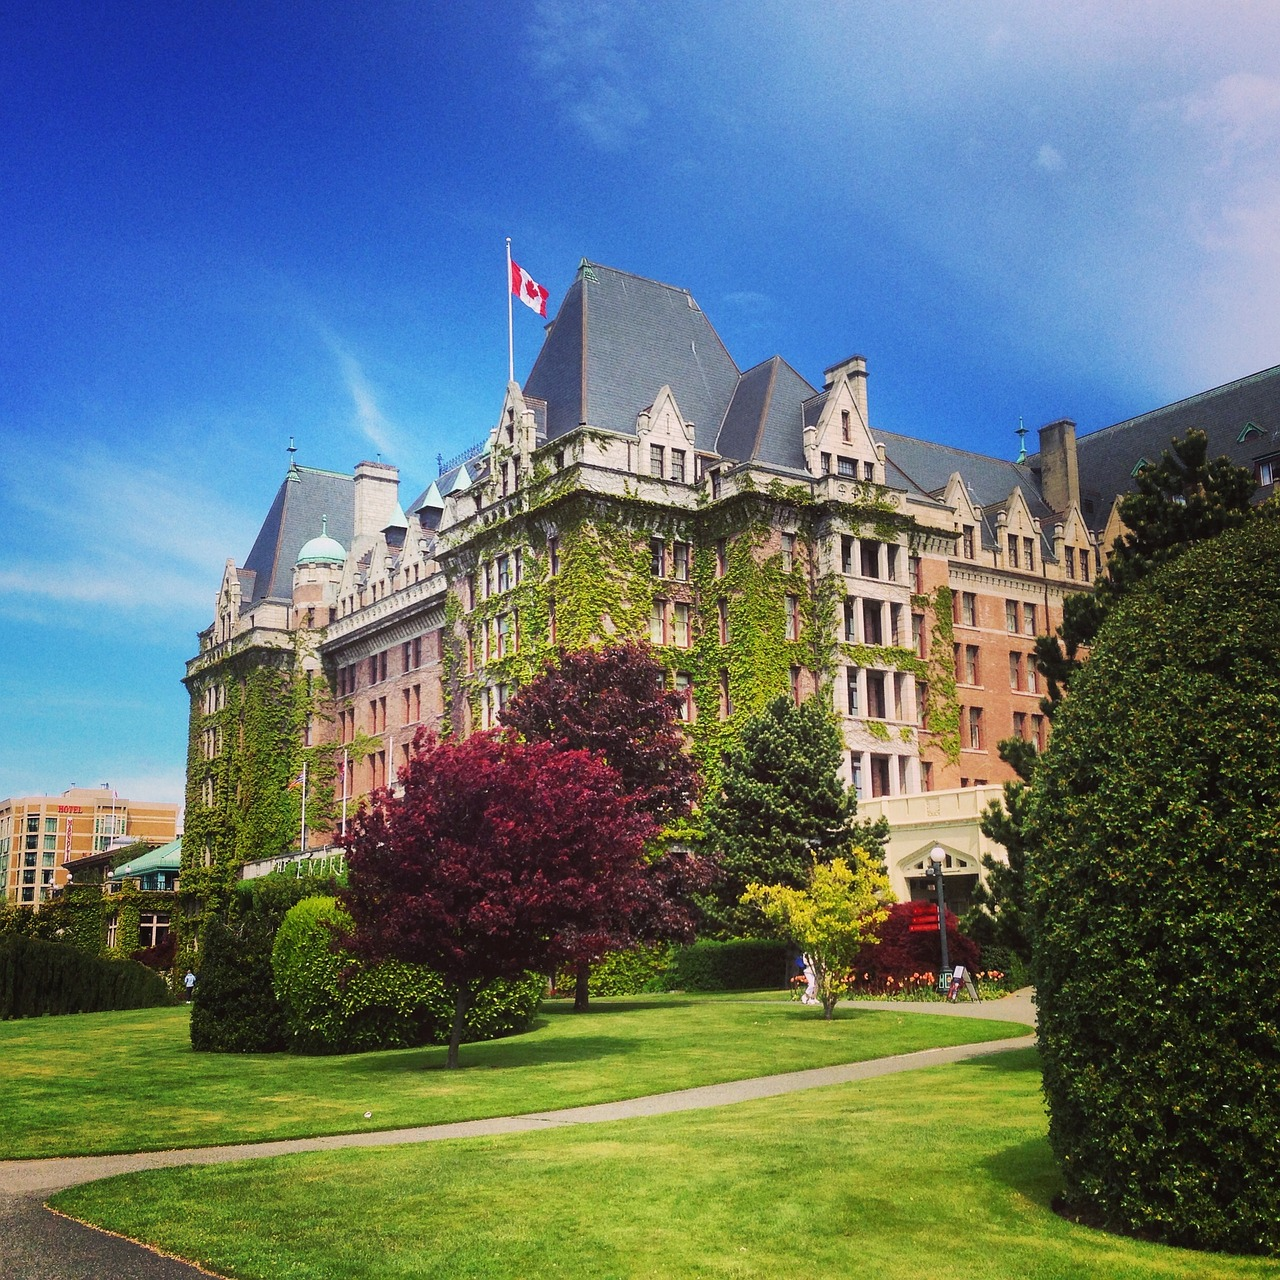 empress hotel,victoria,bc,free pictures, free photos, free images, royalty free, free illustrations, public domain